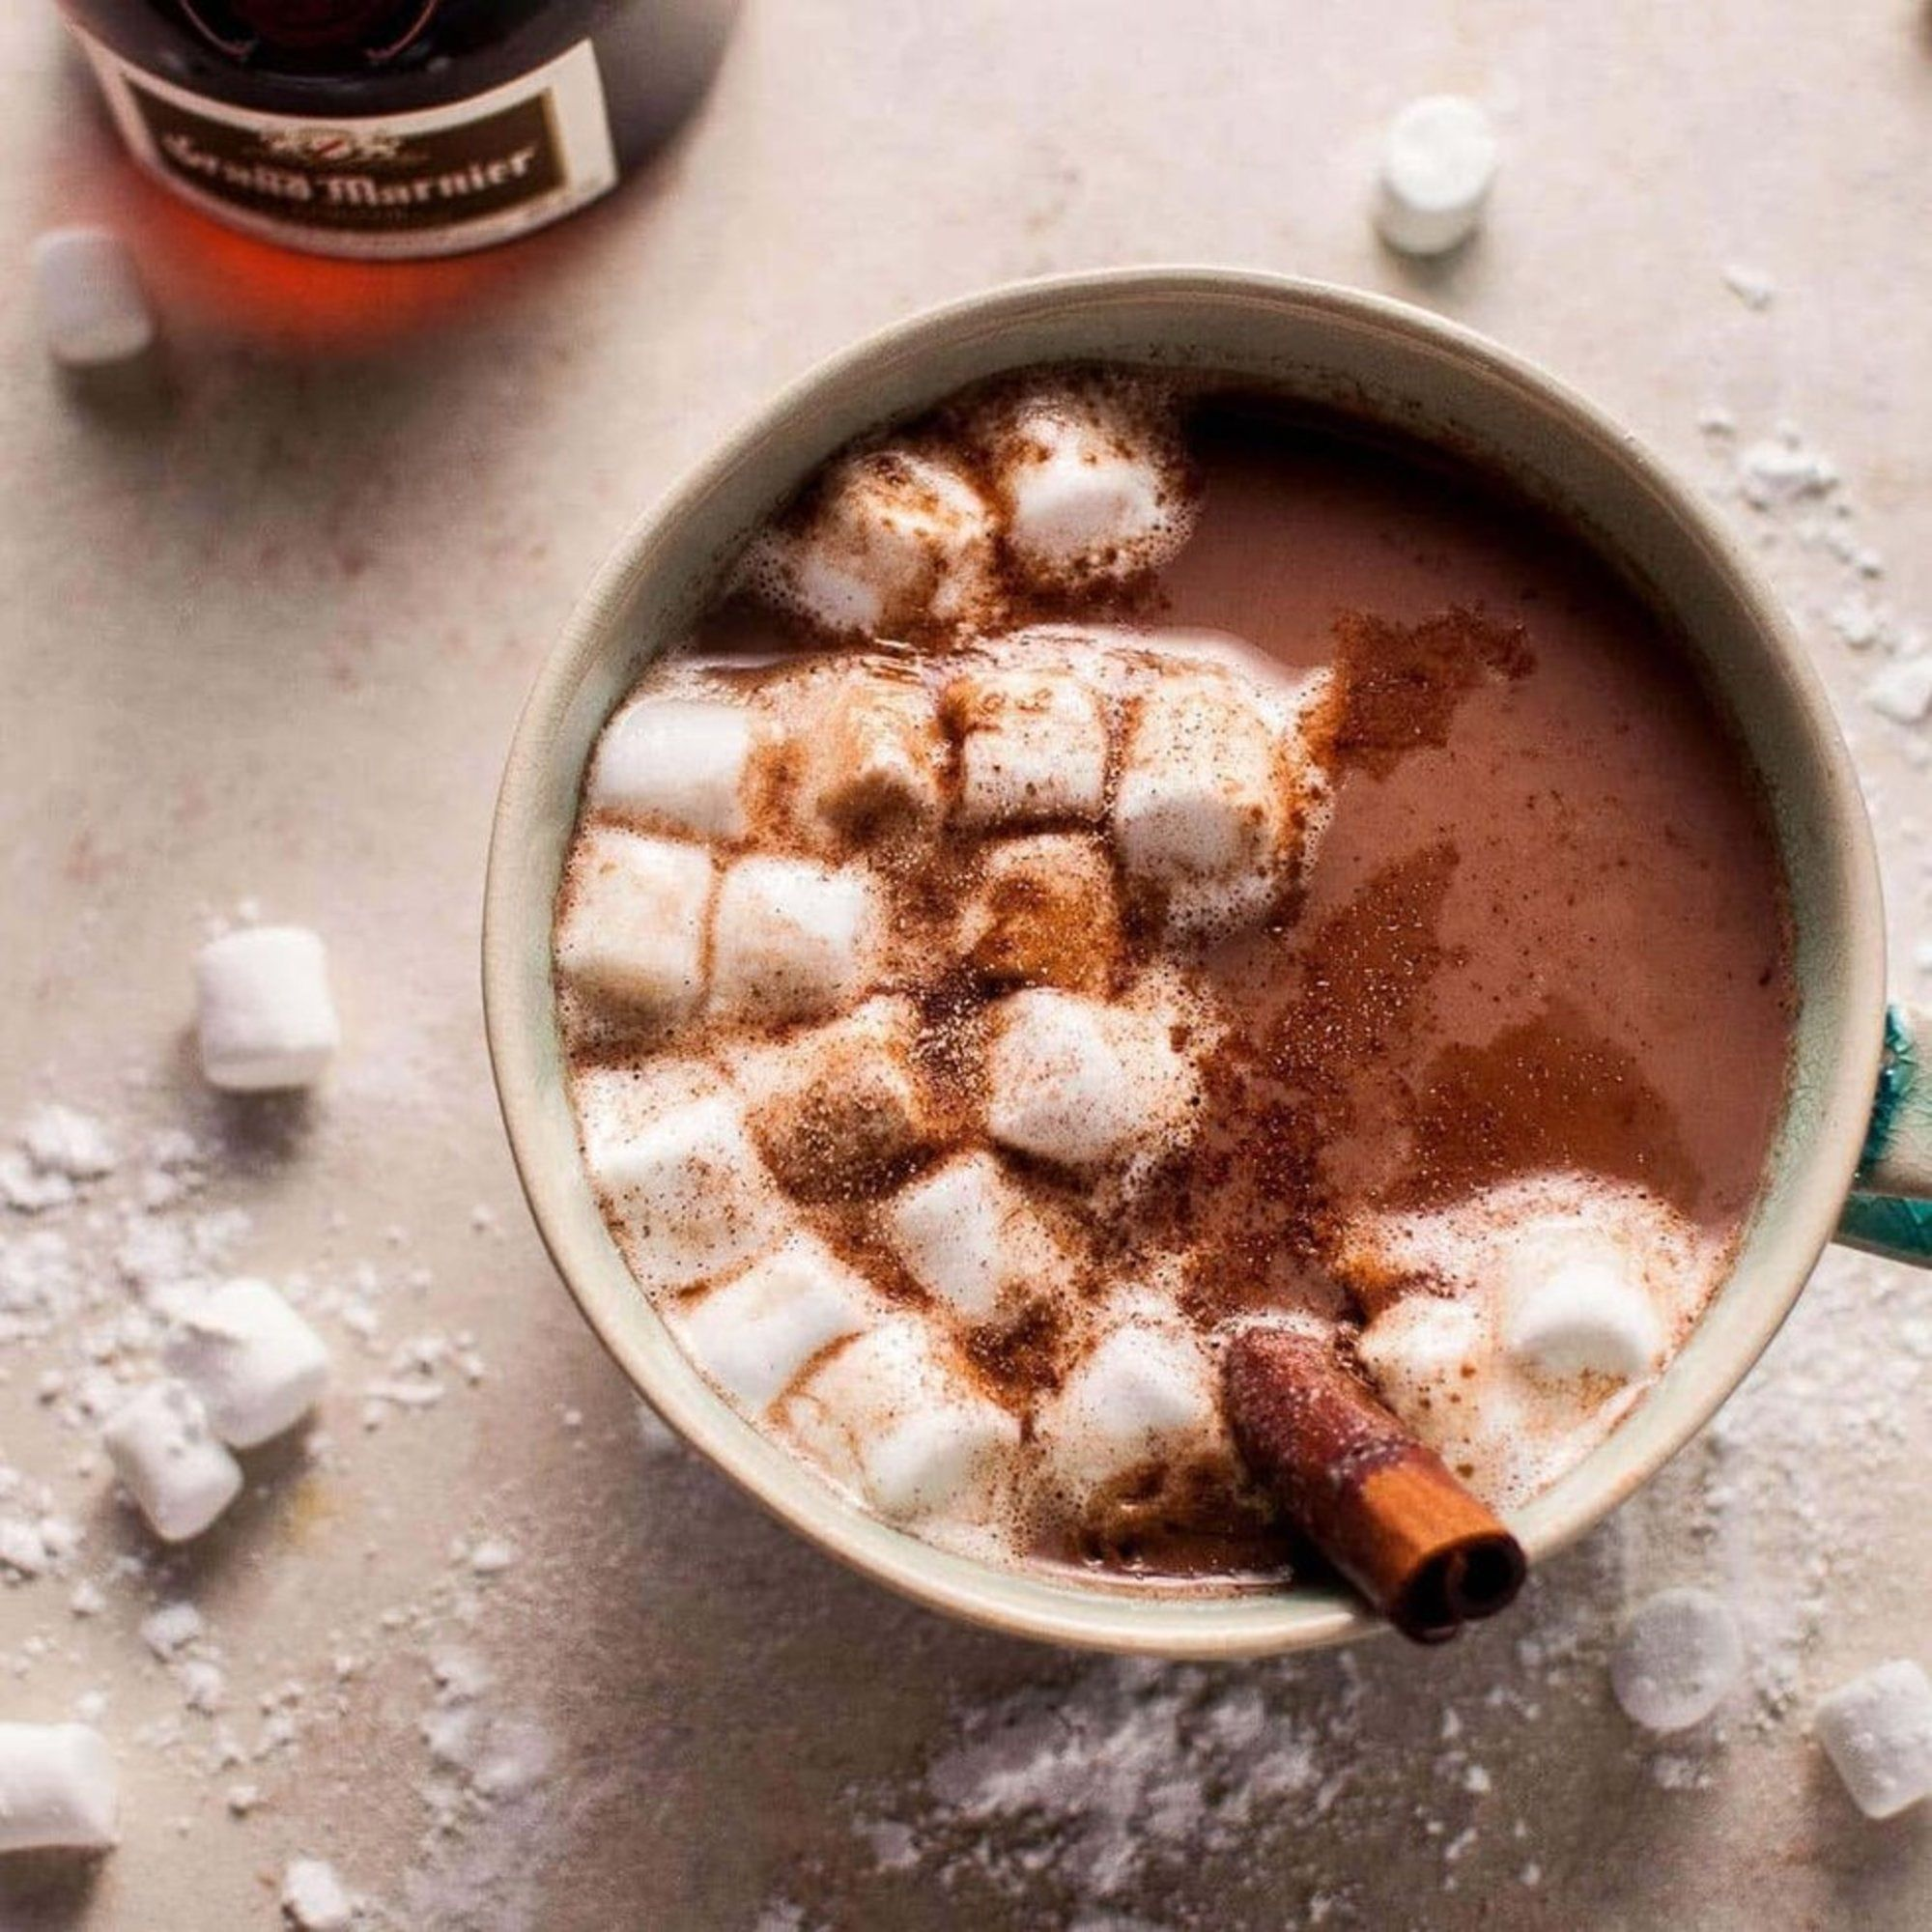 22 Sinful Hot Chocolate Recipes You Have to Try #hotchocolatebar